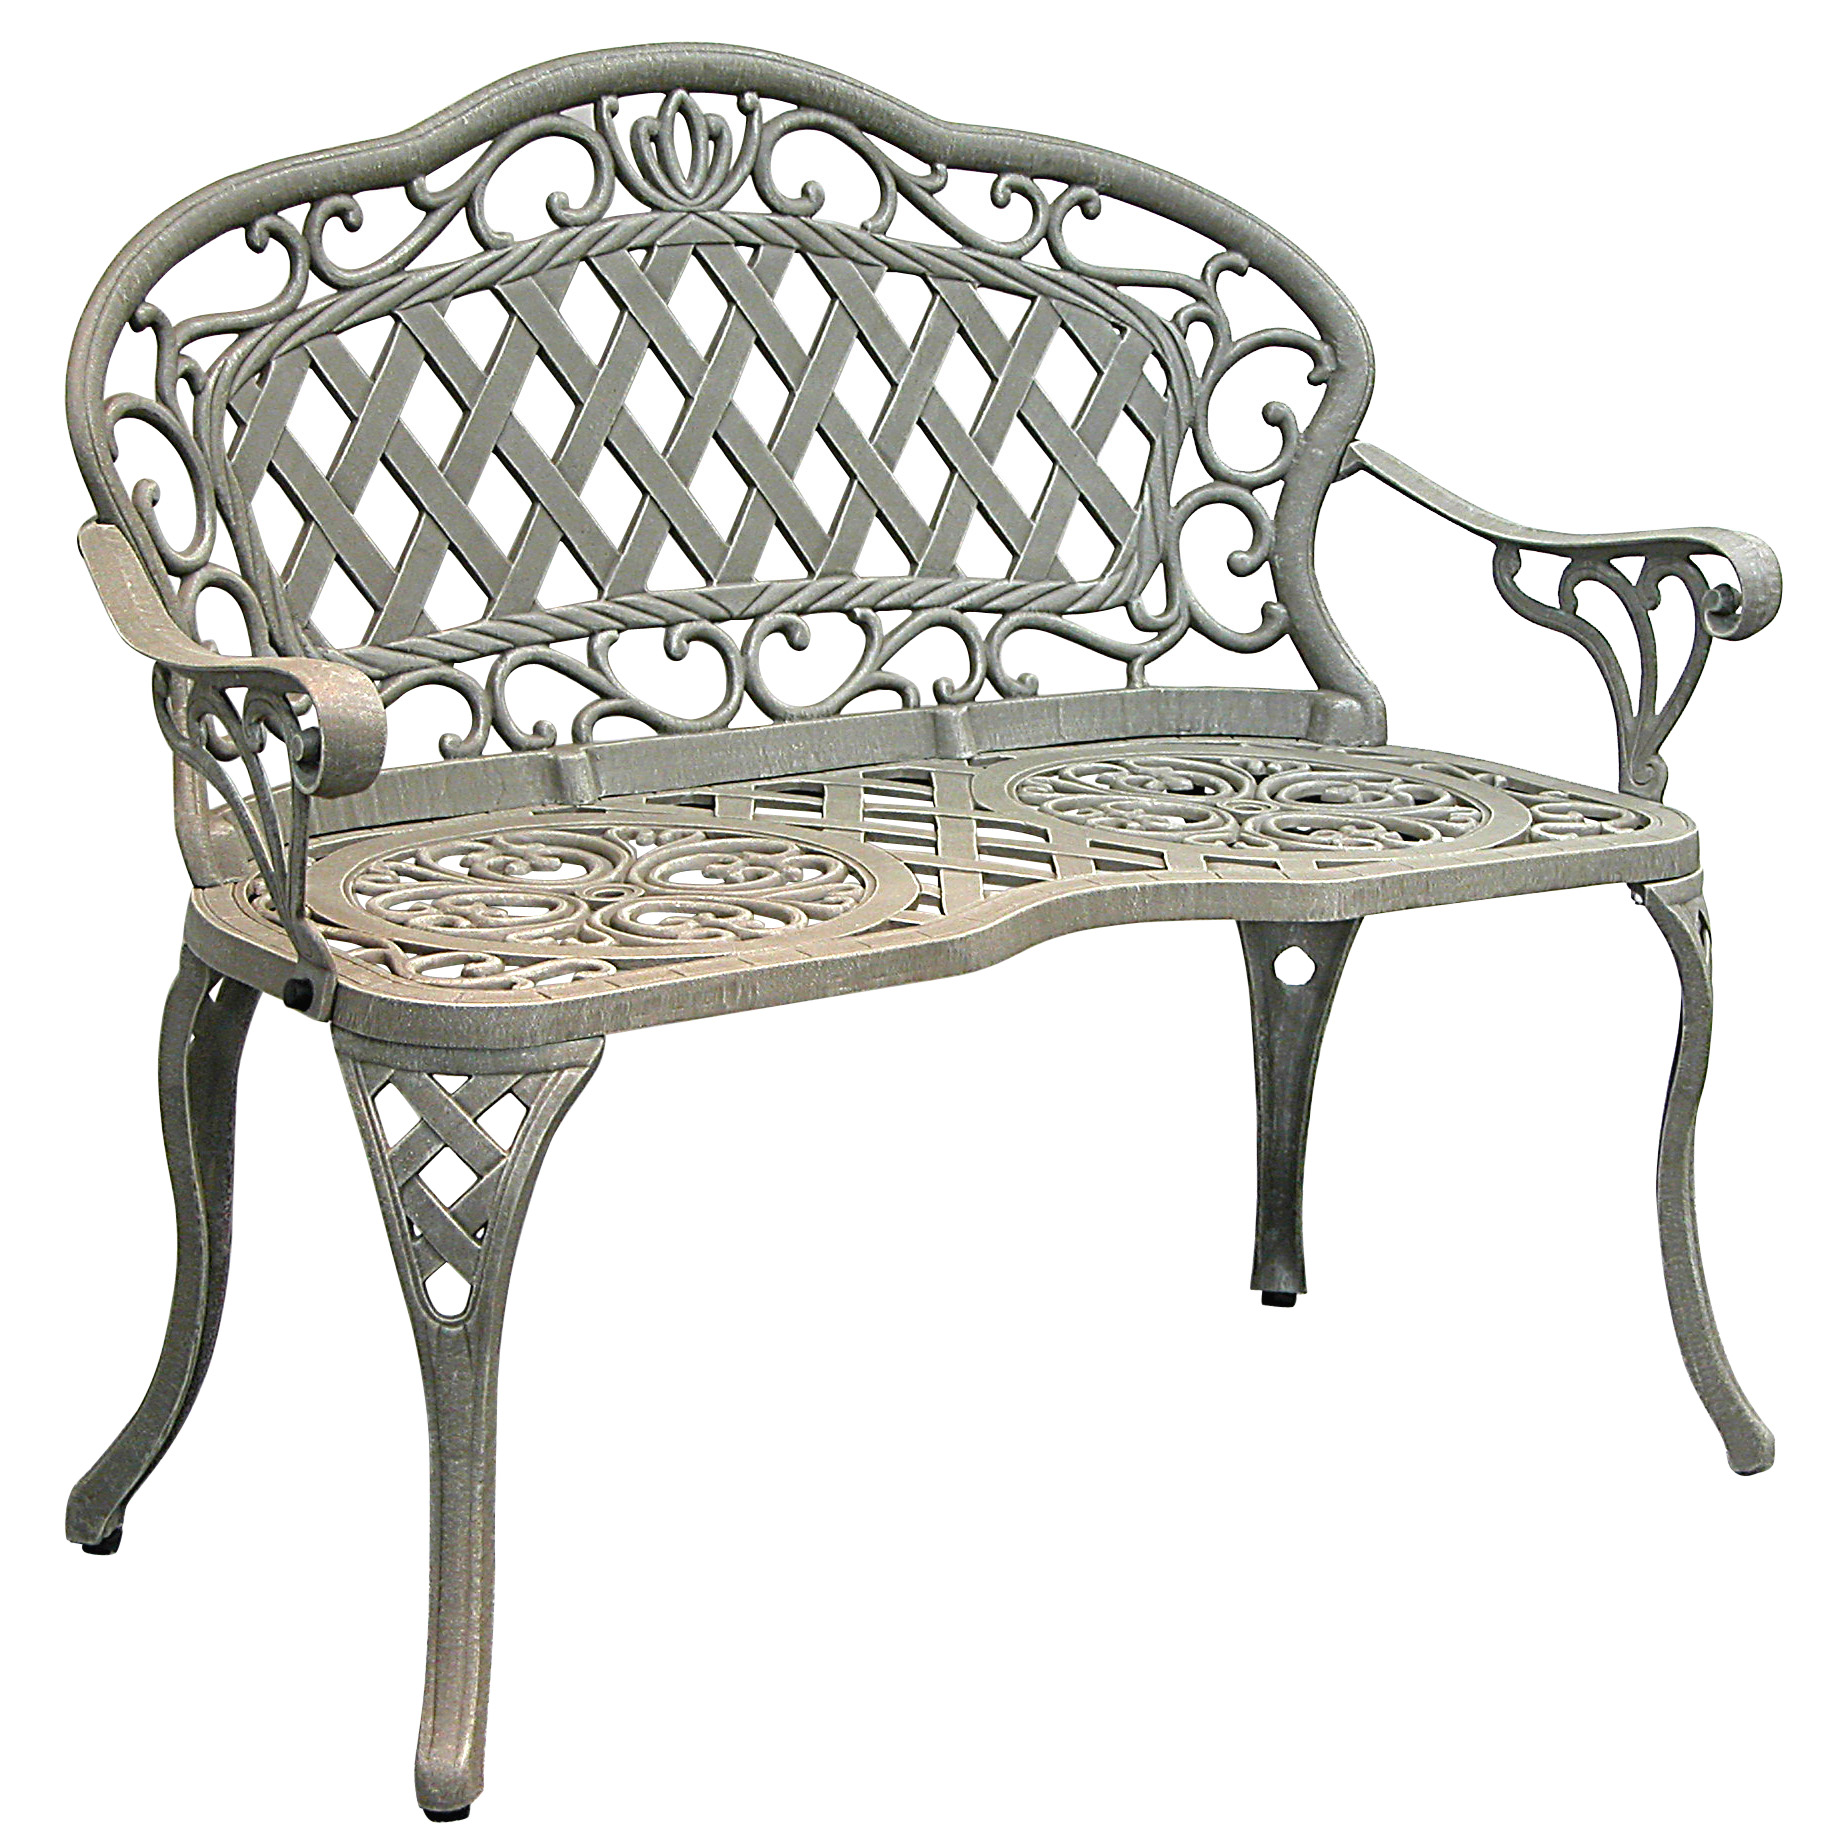 patio furniture bench cast aluminum iron loveseat regis